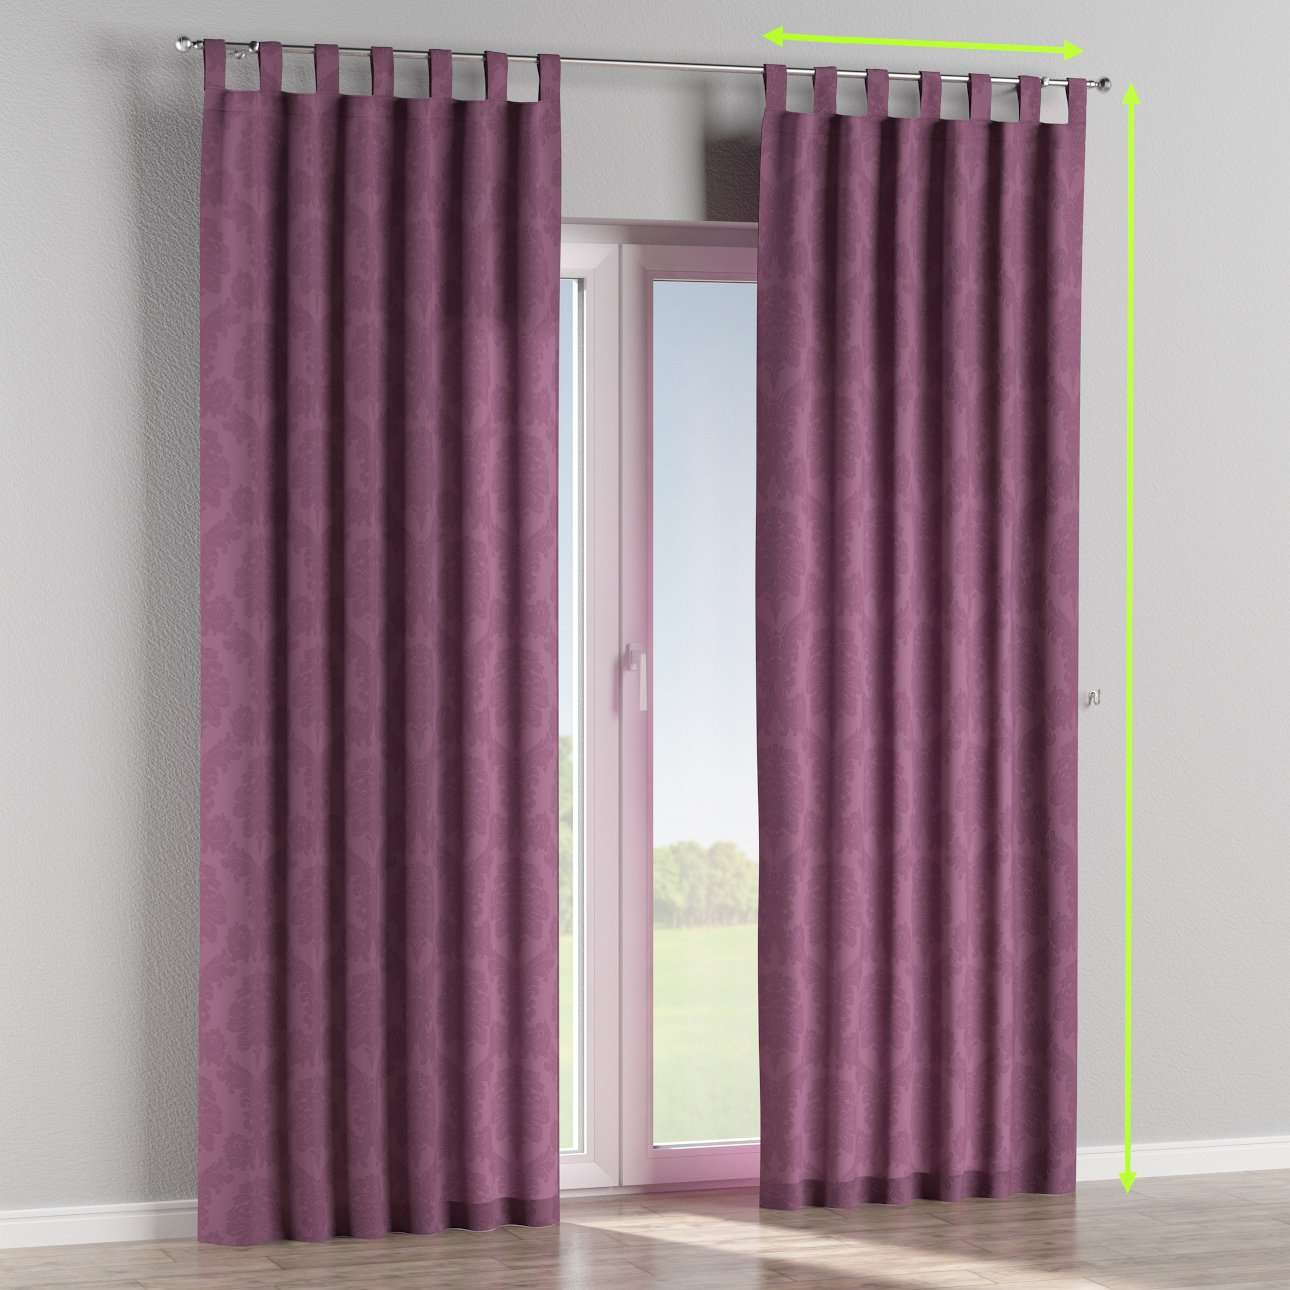 Tab top lined curtains in collection Damasco, fabric: 613-75